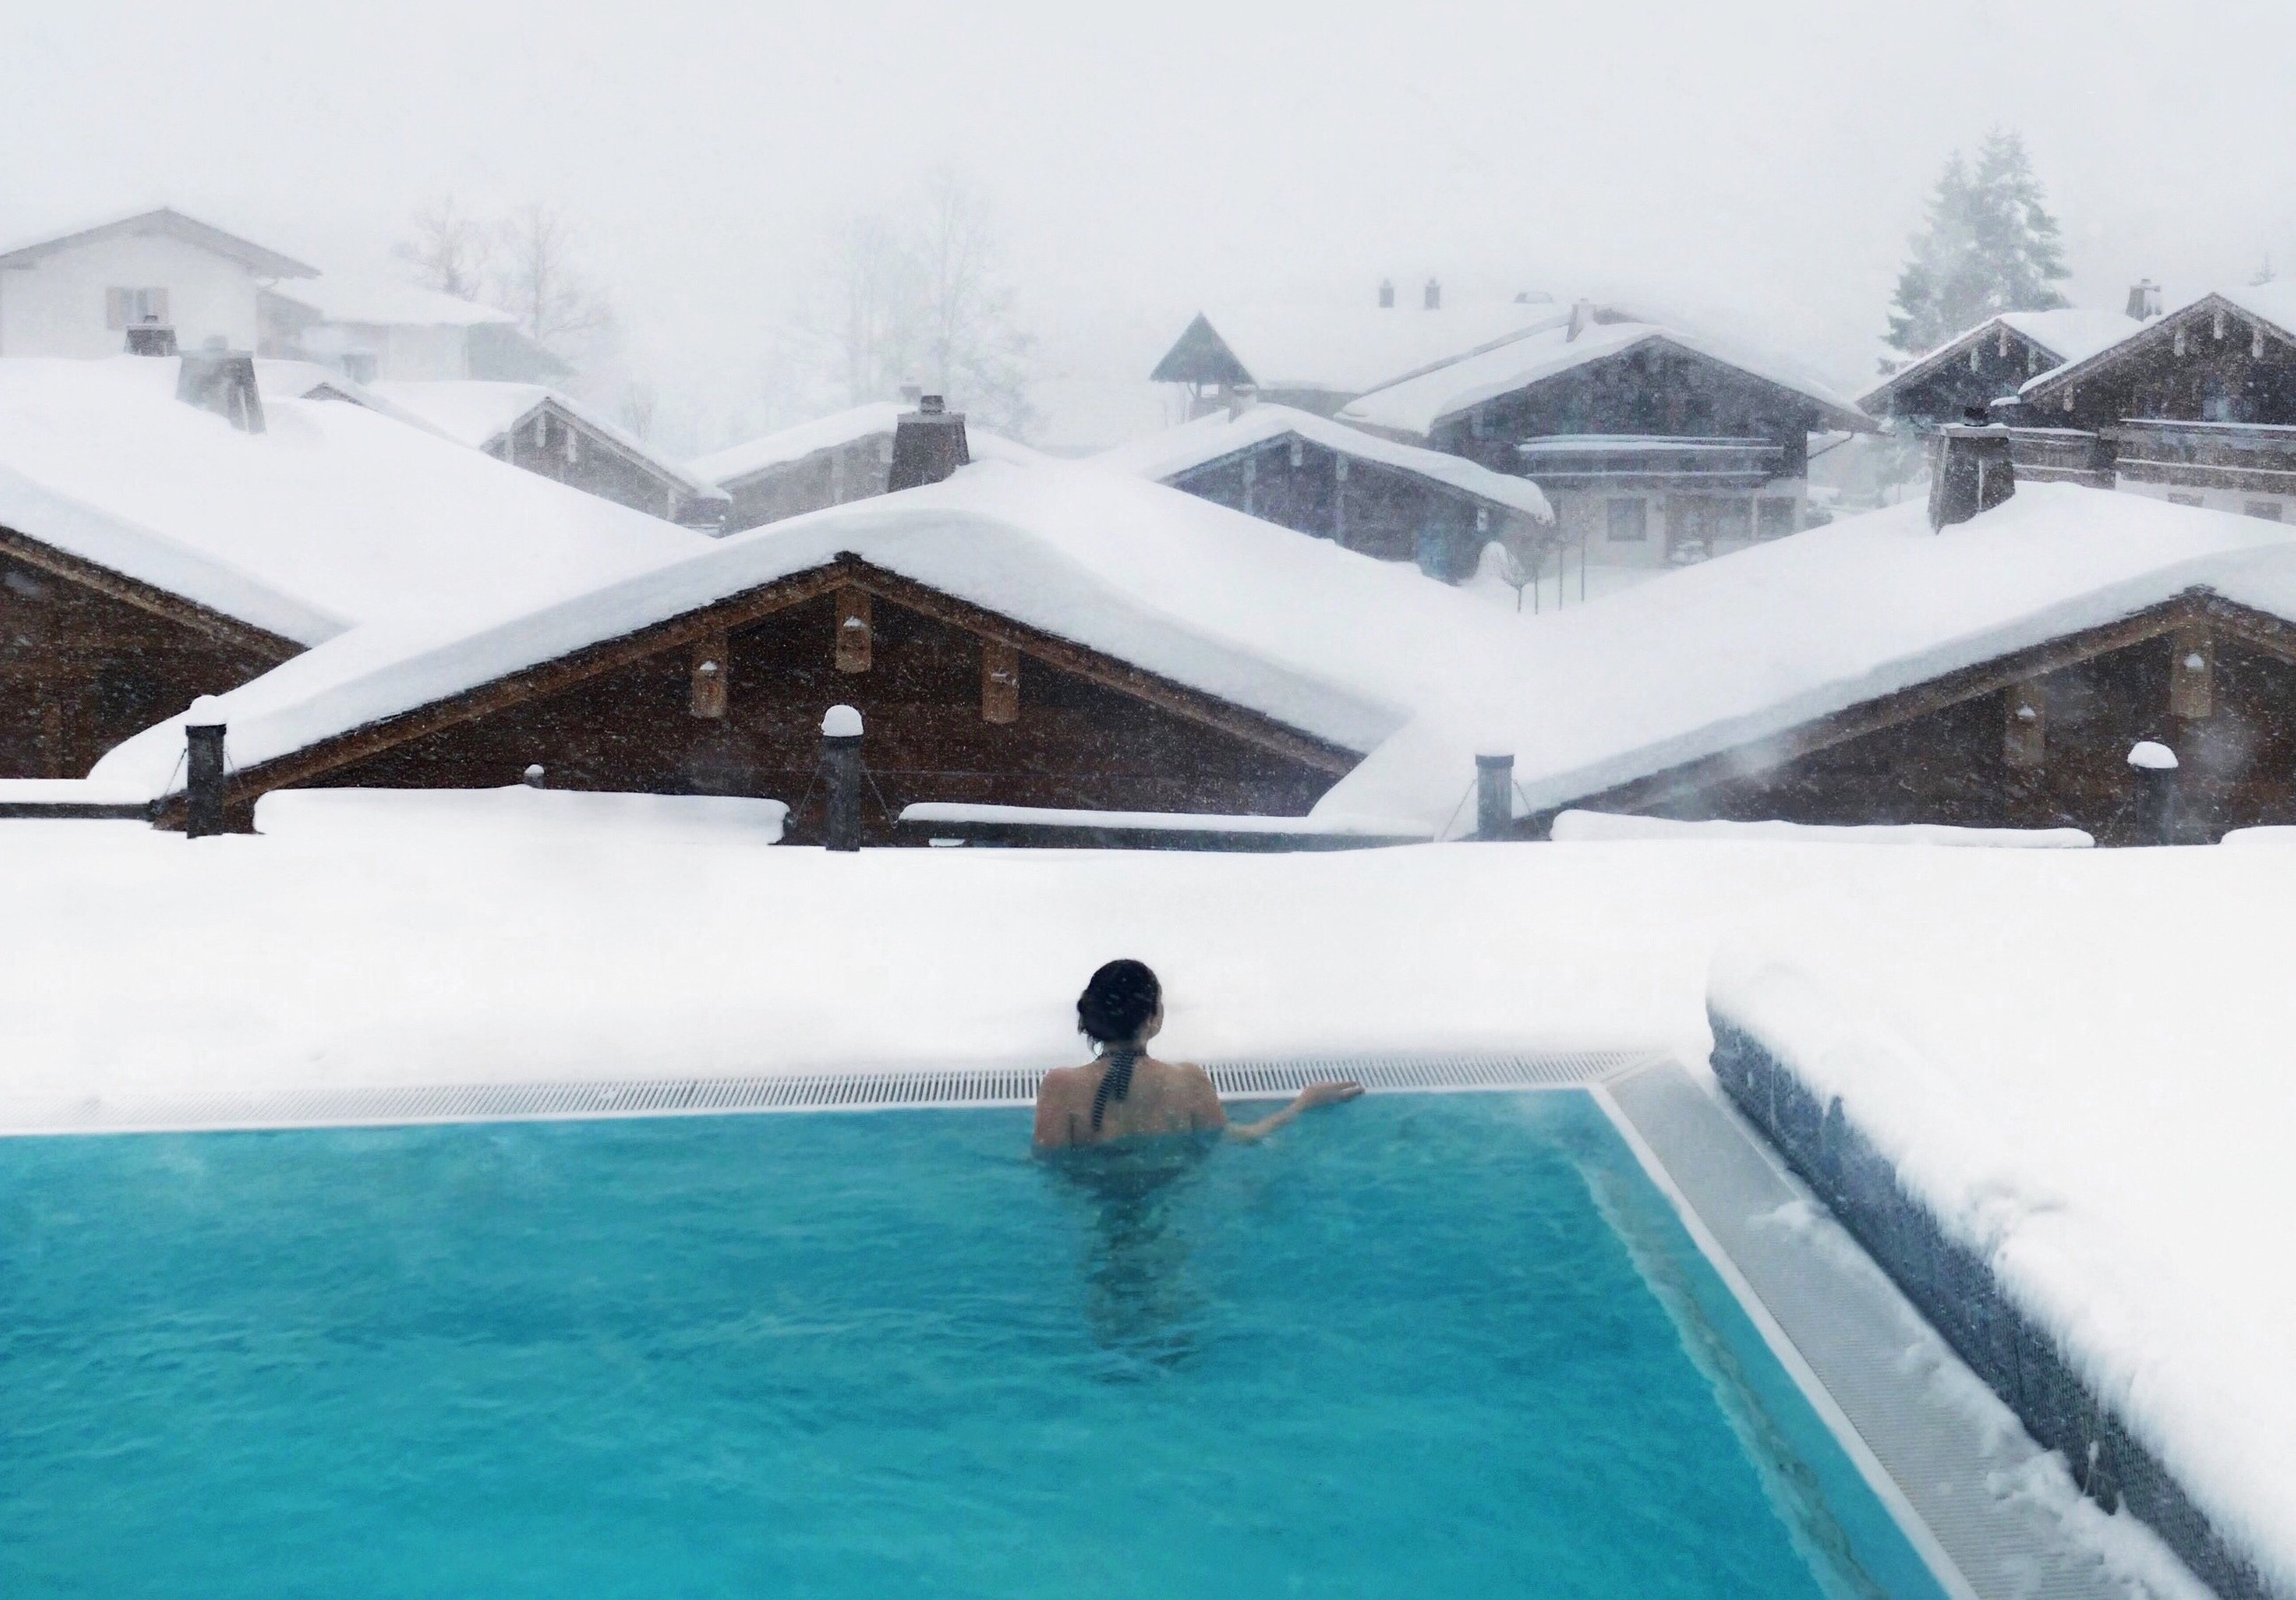 Winter Urlaub Kurztrip Wellness Hotel Hotel in den Bergen Pool Infinity pool Winter Sauna Blockhütte